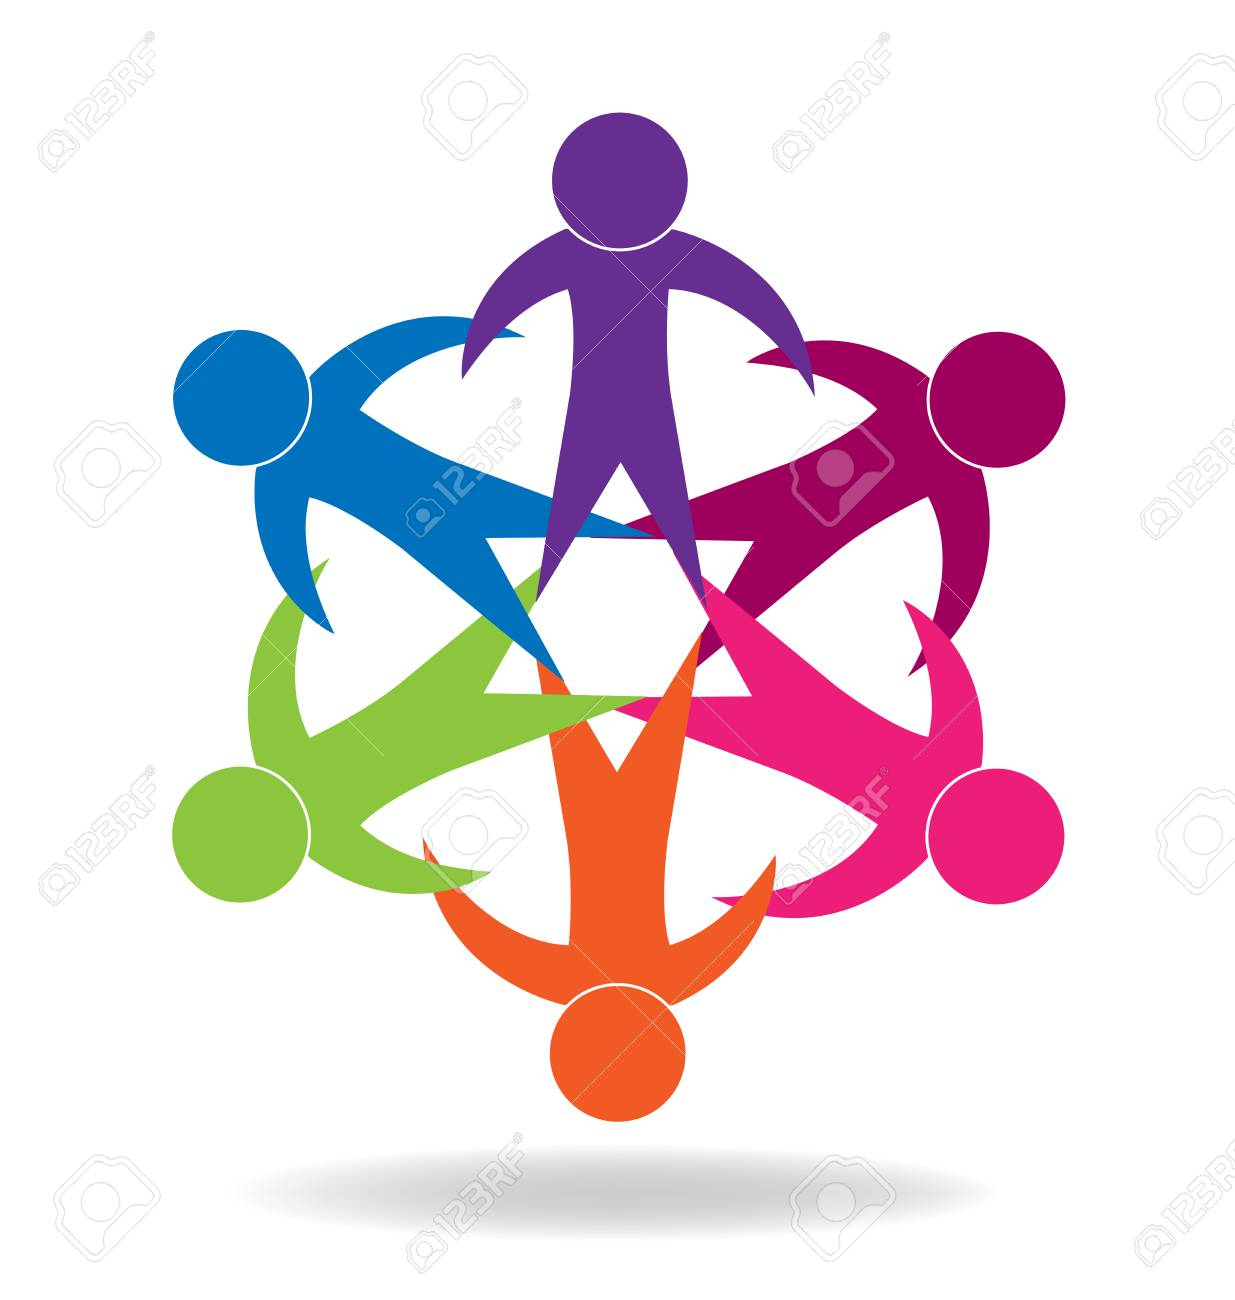 Logo Teamwork Unity Holding Hands Educational Concept Icon Vector Royalty Free Cliparts Vectors And Stock Illustration Image 102081358